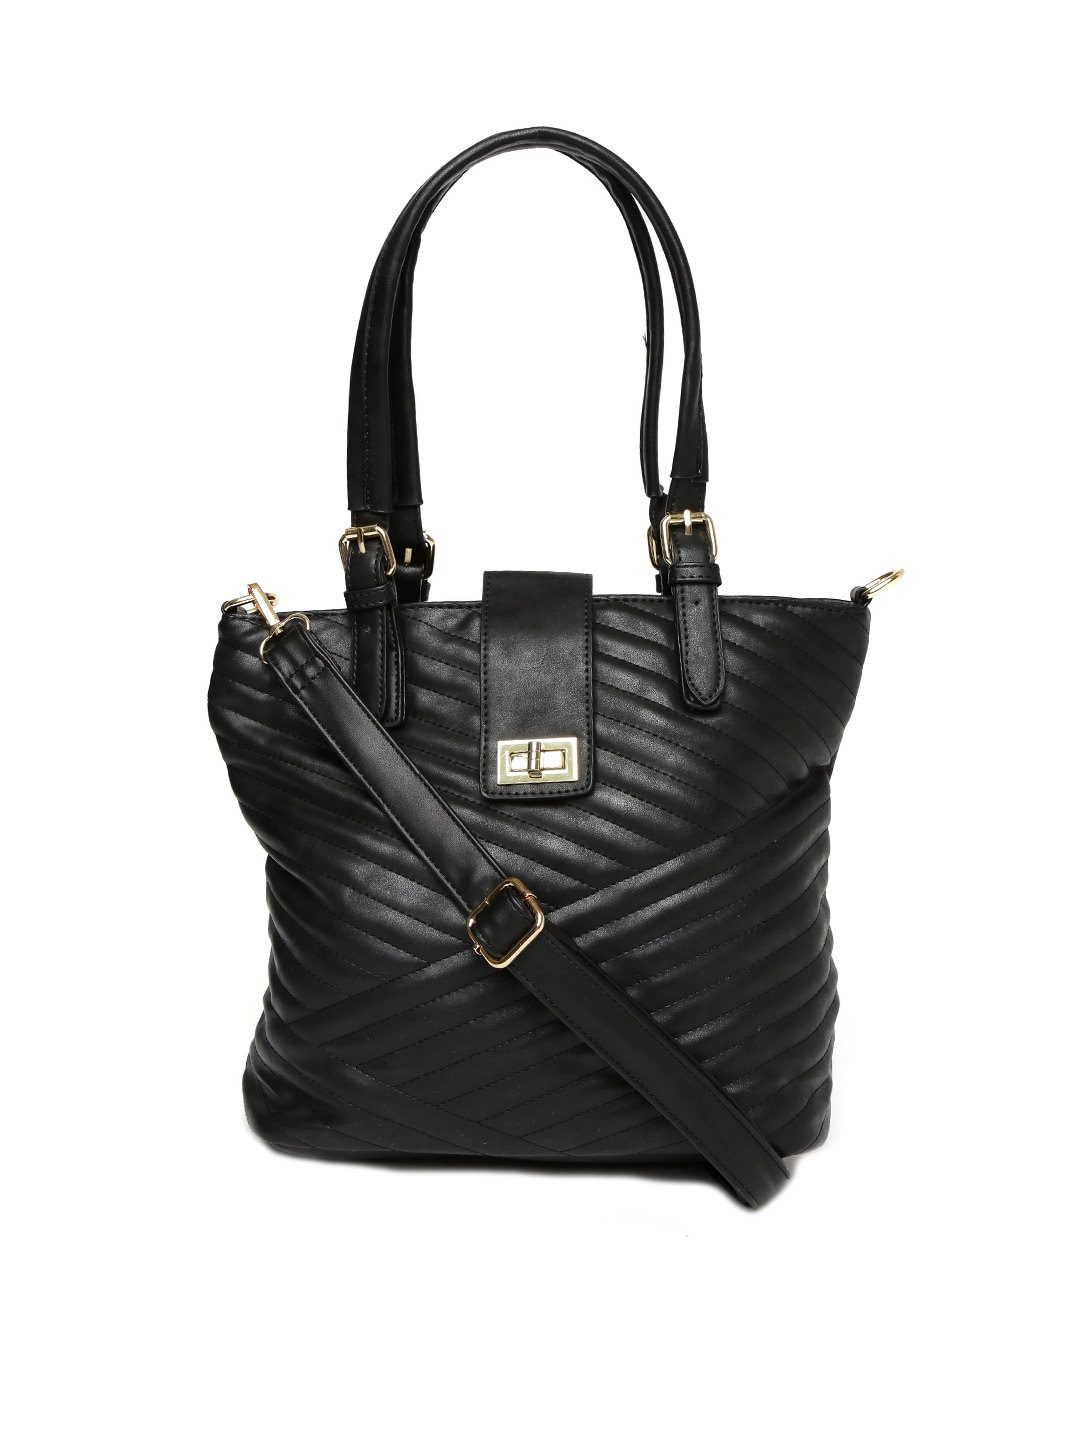 Design Shop Handbags - Buy Design Shop Handbags online in India 650aab6283